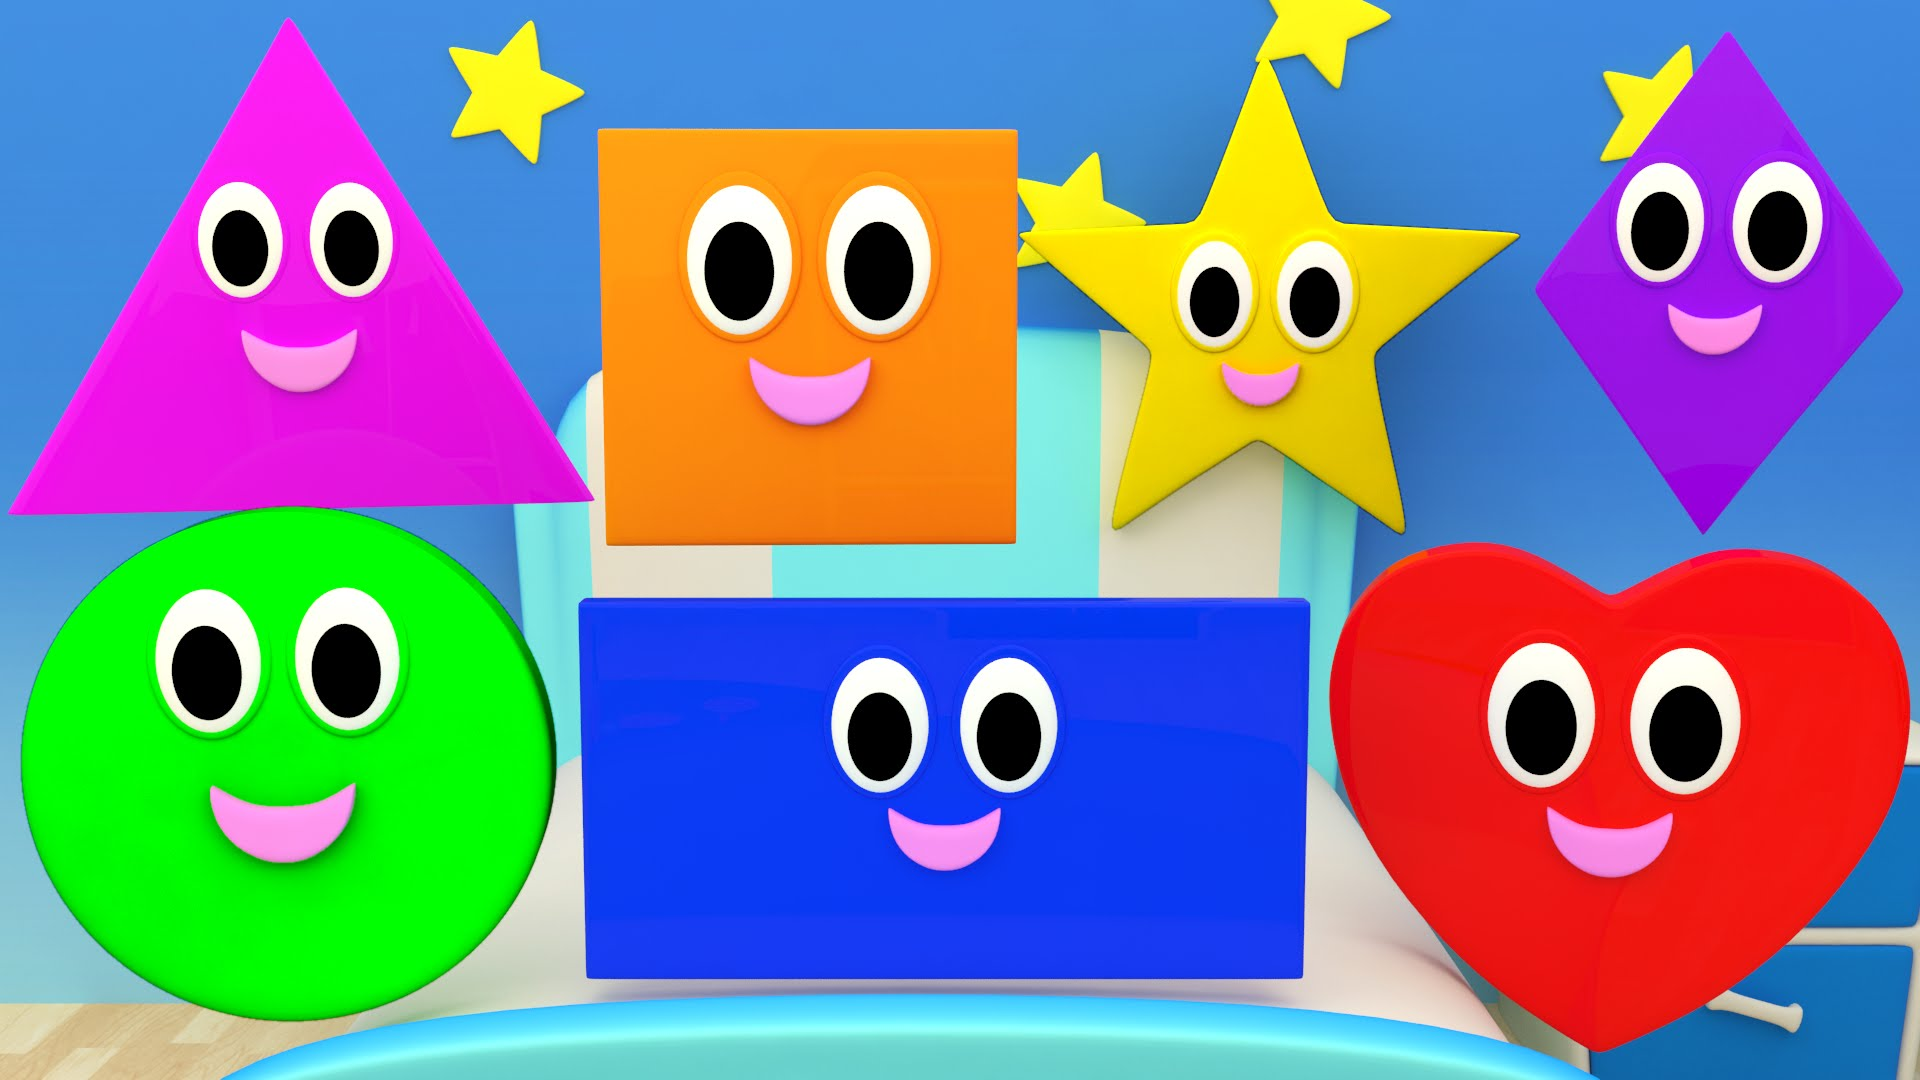 Shapes clipart children's. Our projects for the